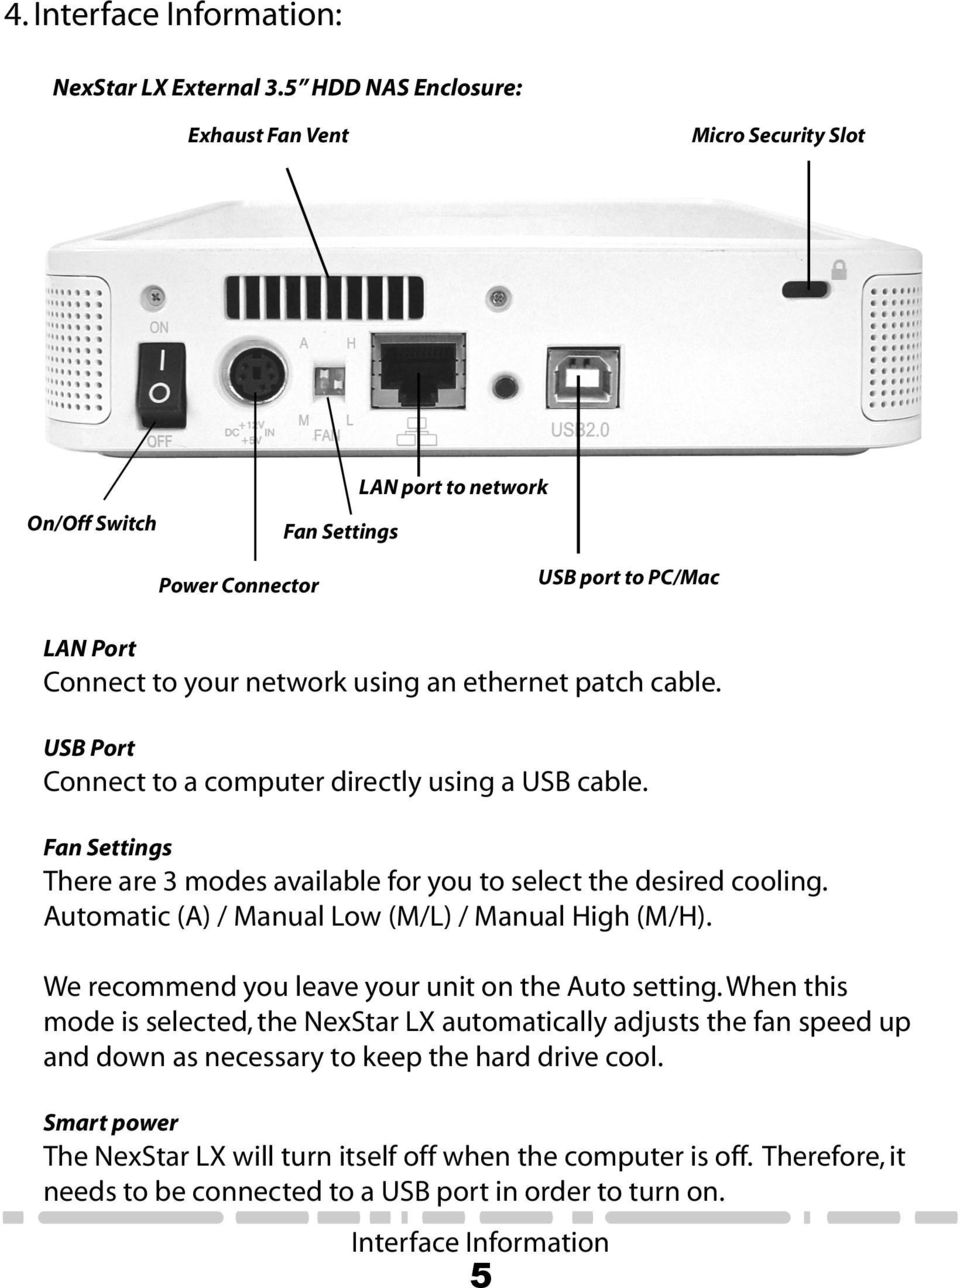 cable. USB Port Connect to a computer directly using a USB cable. Fan Settings There are 3 modes available for you to select the desired cooling. Automatic (A) / Manual Low (M/L) / Manual High (M/H).